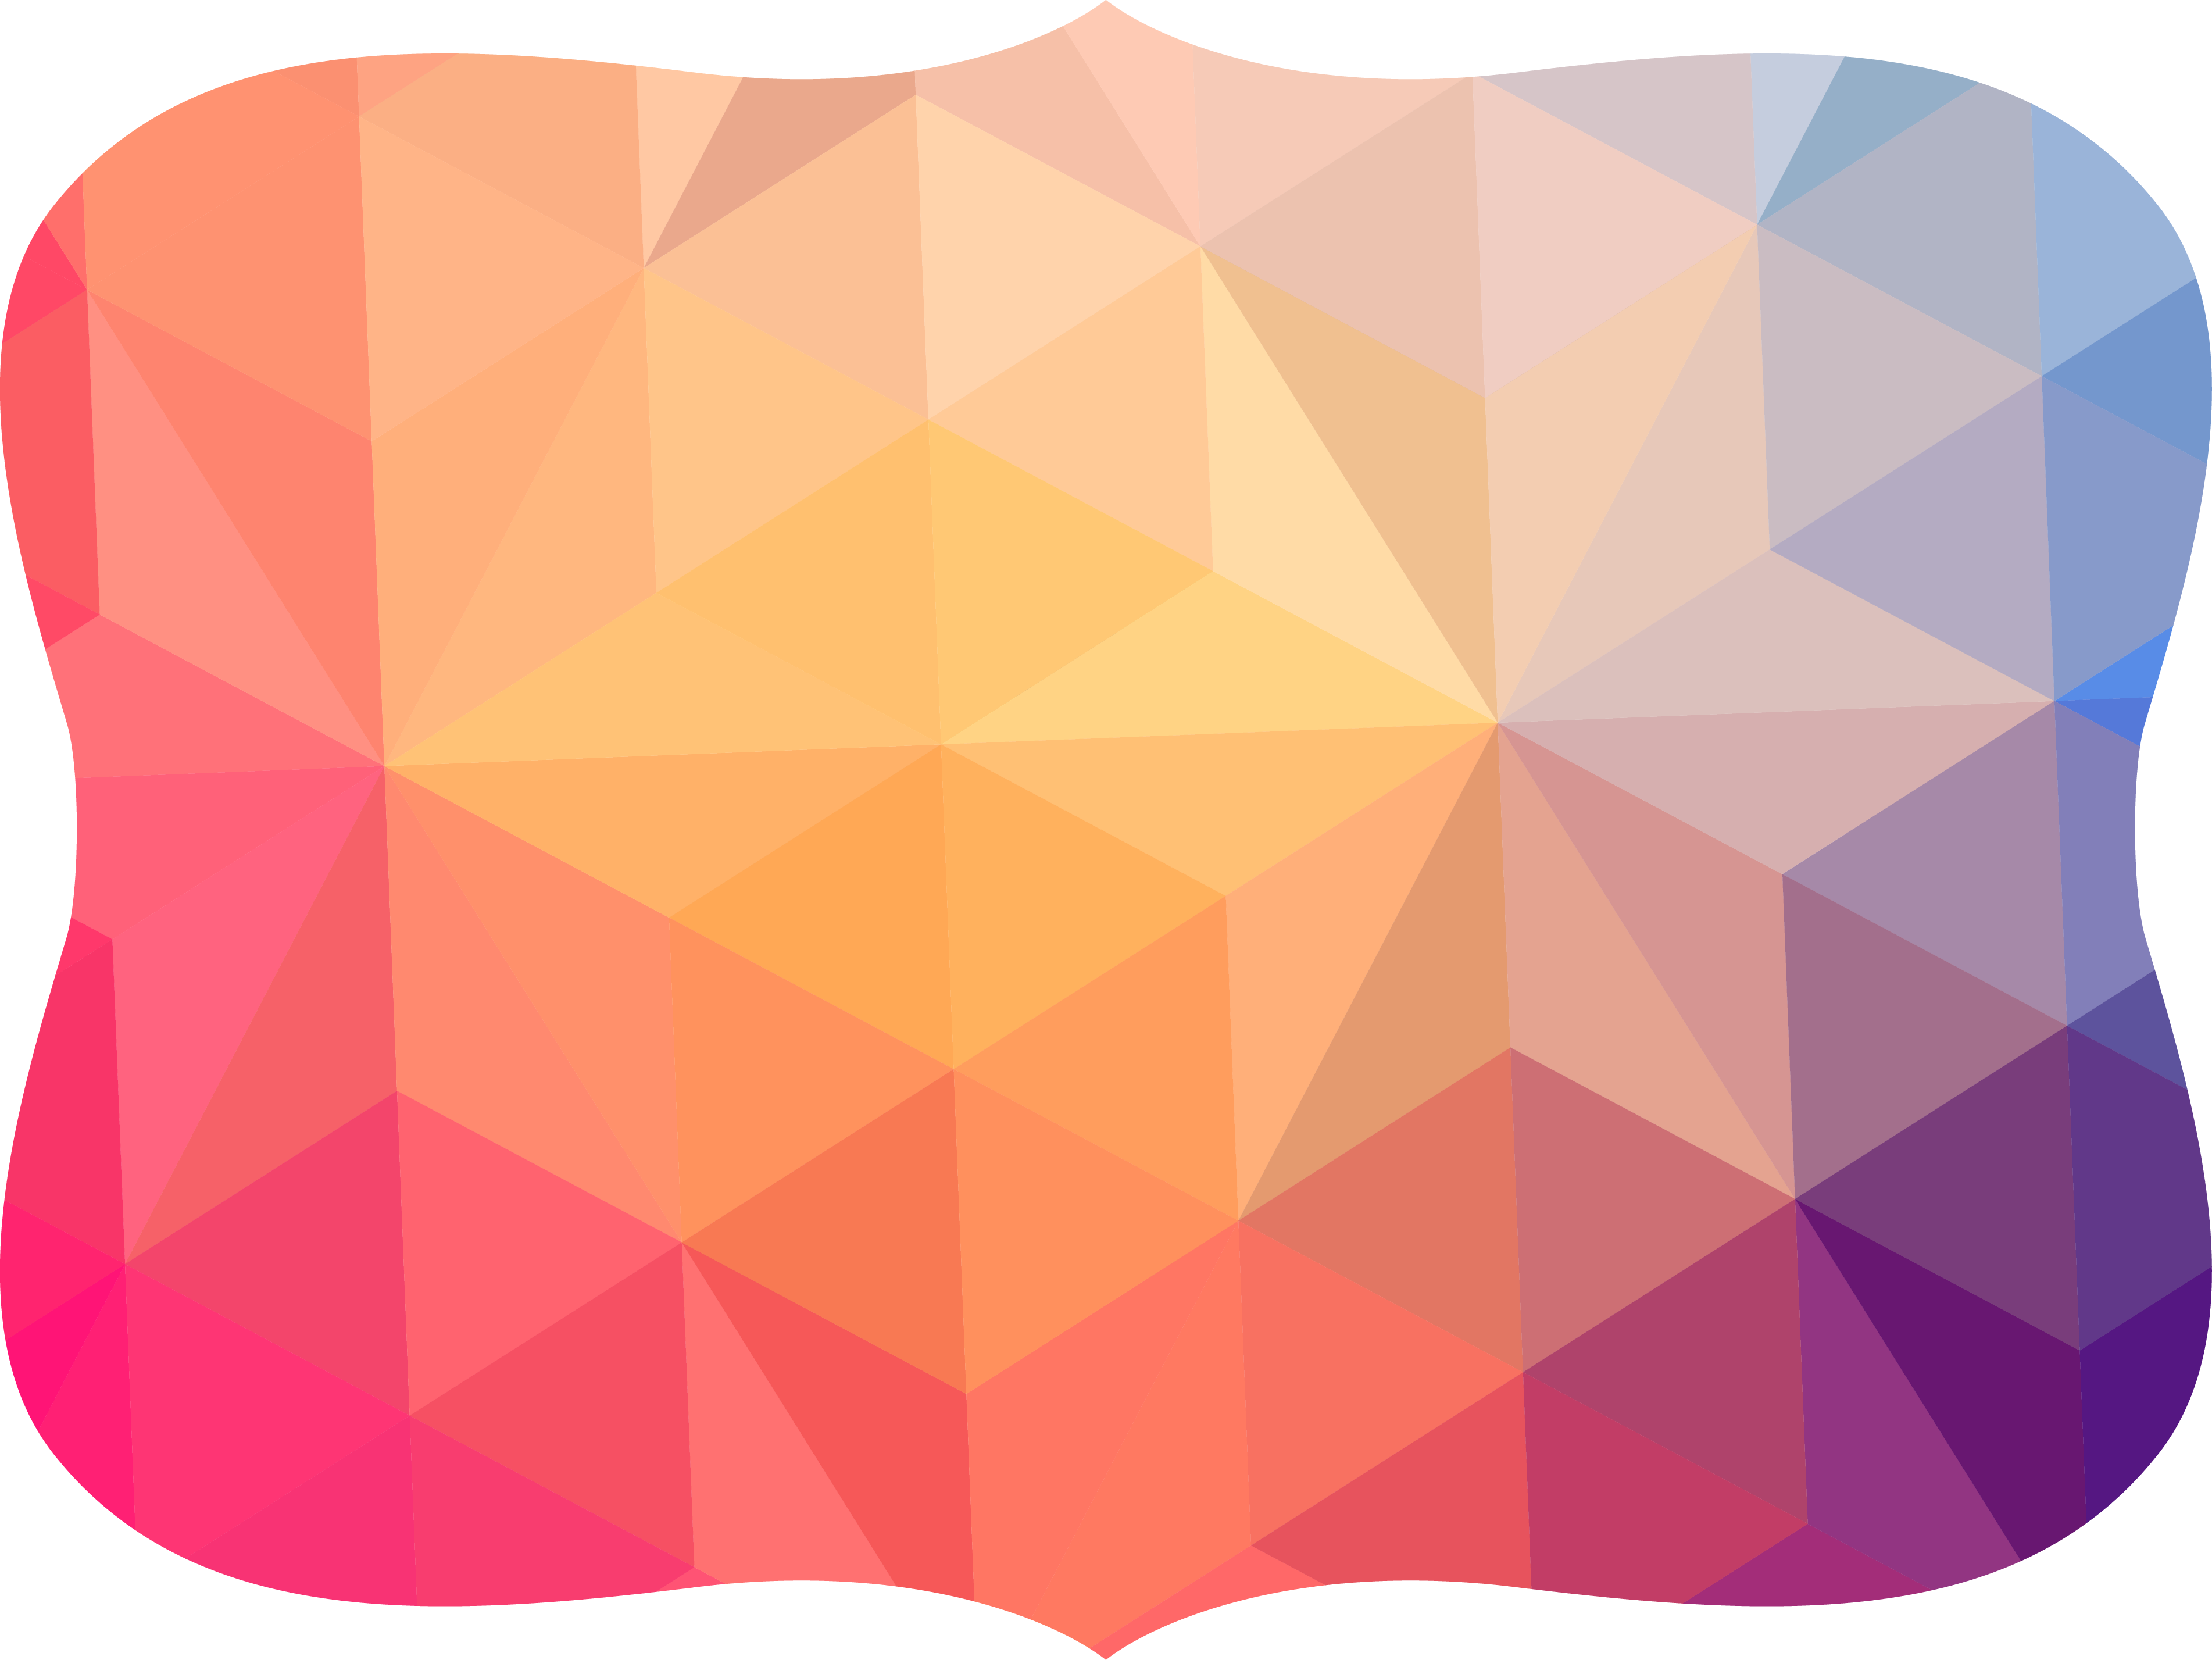 Geometry clipart polygon. Colorful abstract geometric border